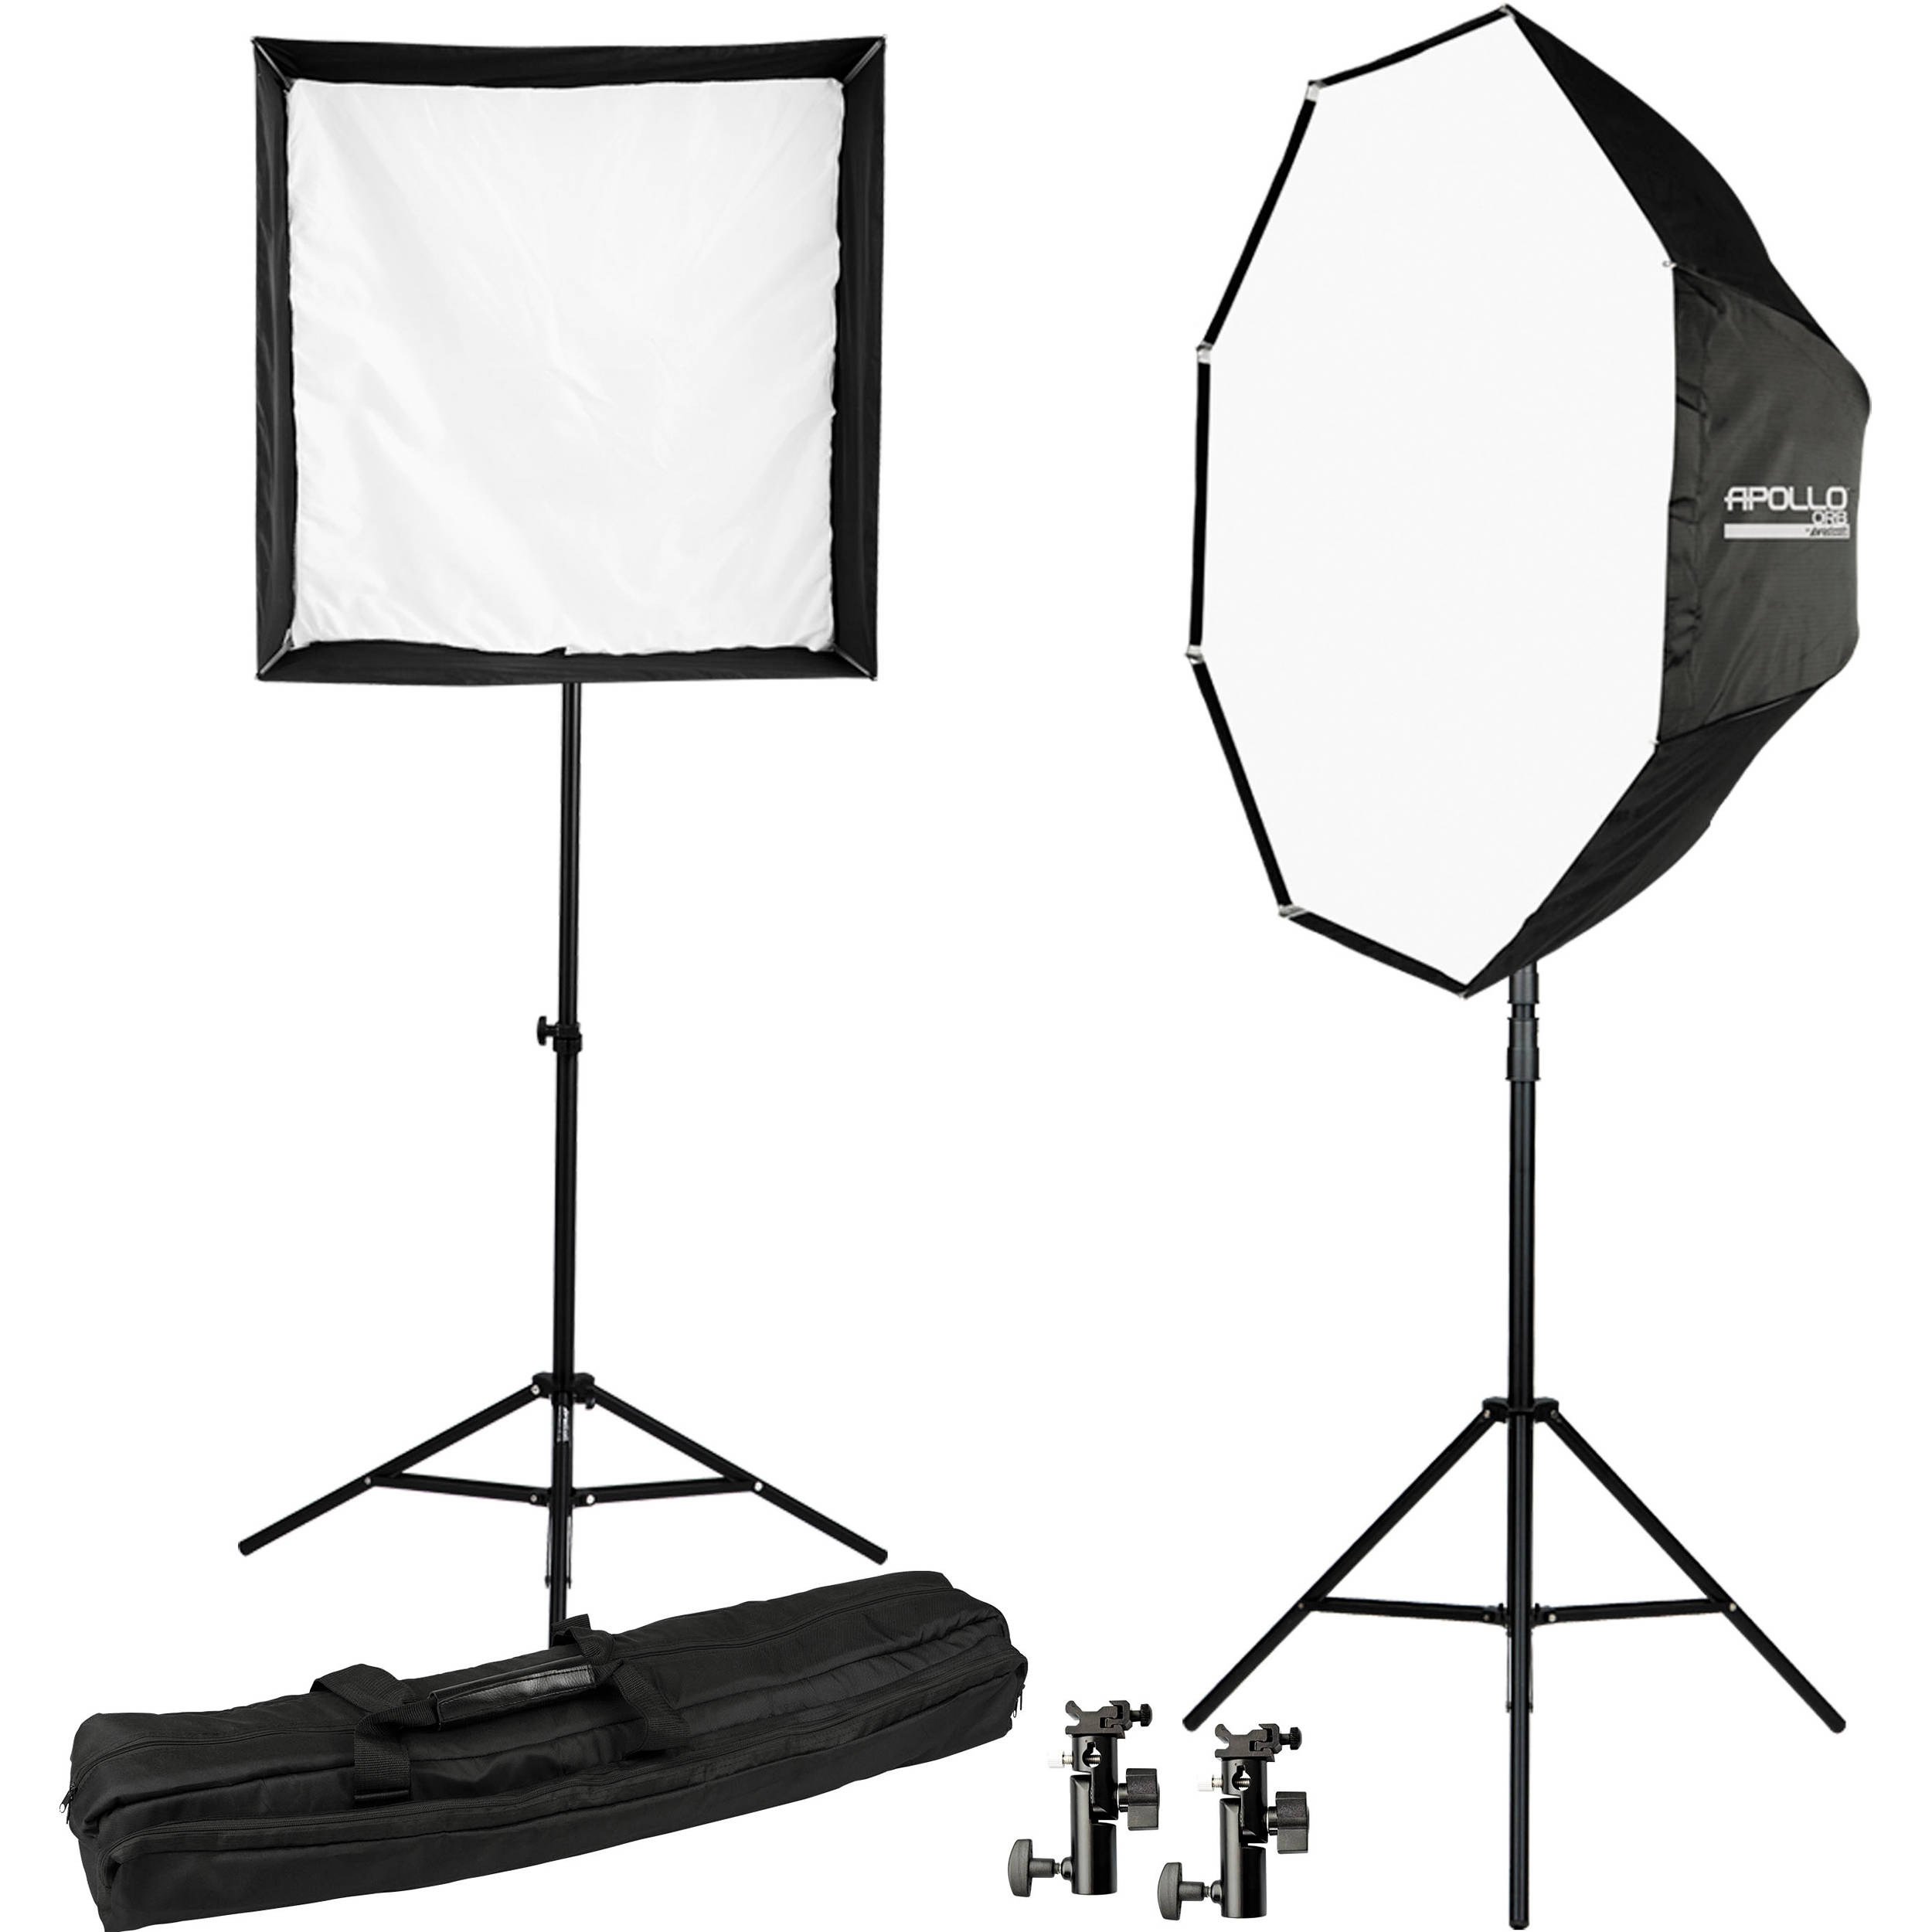 My Favorite Light Modifier The Westcott Apollo: Westcott Apollo Orb Duo Kit 2349 B&H Photo Video